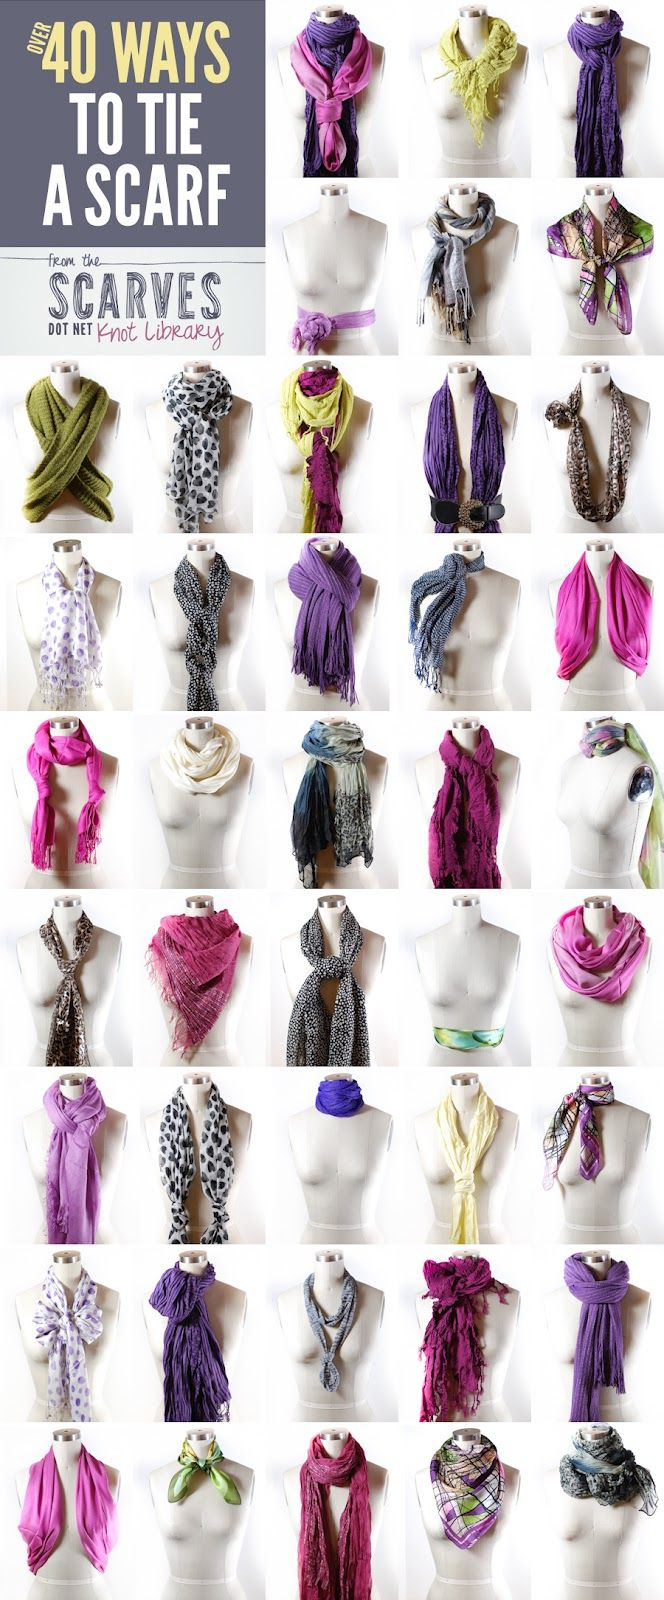 40 Ways to Tie a Scarf: Ties Scarves, Scarfs Knot, Ties A Scarfs, Scarfs Ideas, Outfit, Over 40, Scarfs Ties, Wear A Scarfs, Wear Scarves